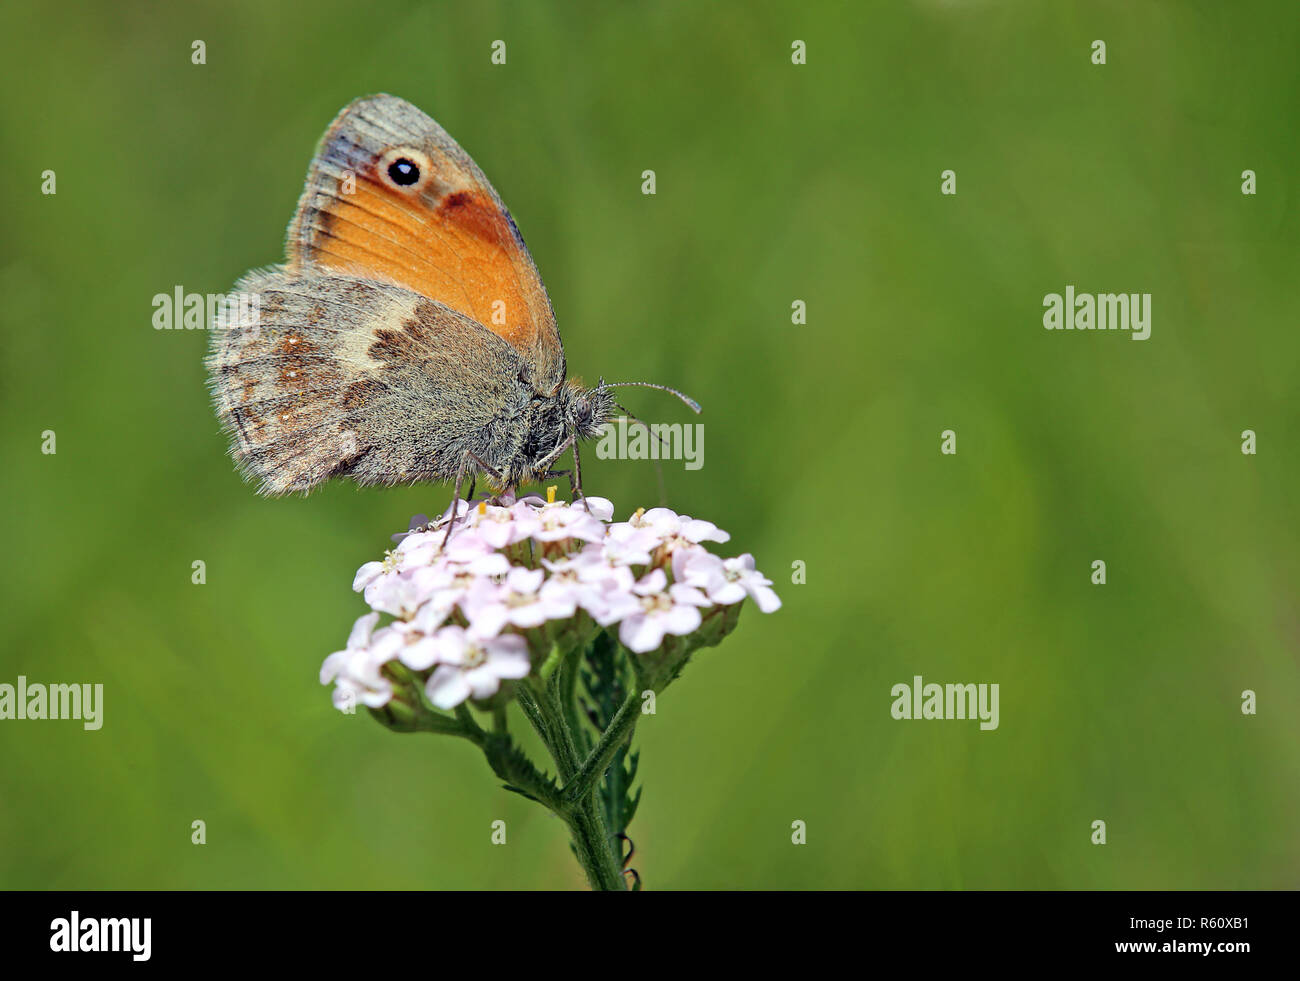 small meadow bird coenonympha pamphilus - Stock Image